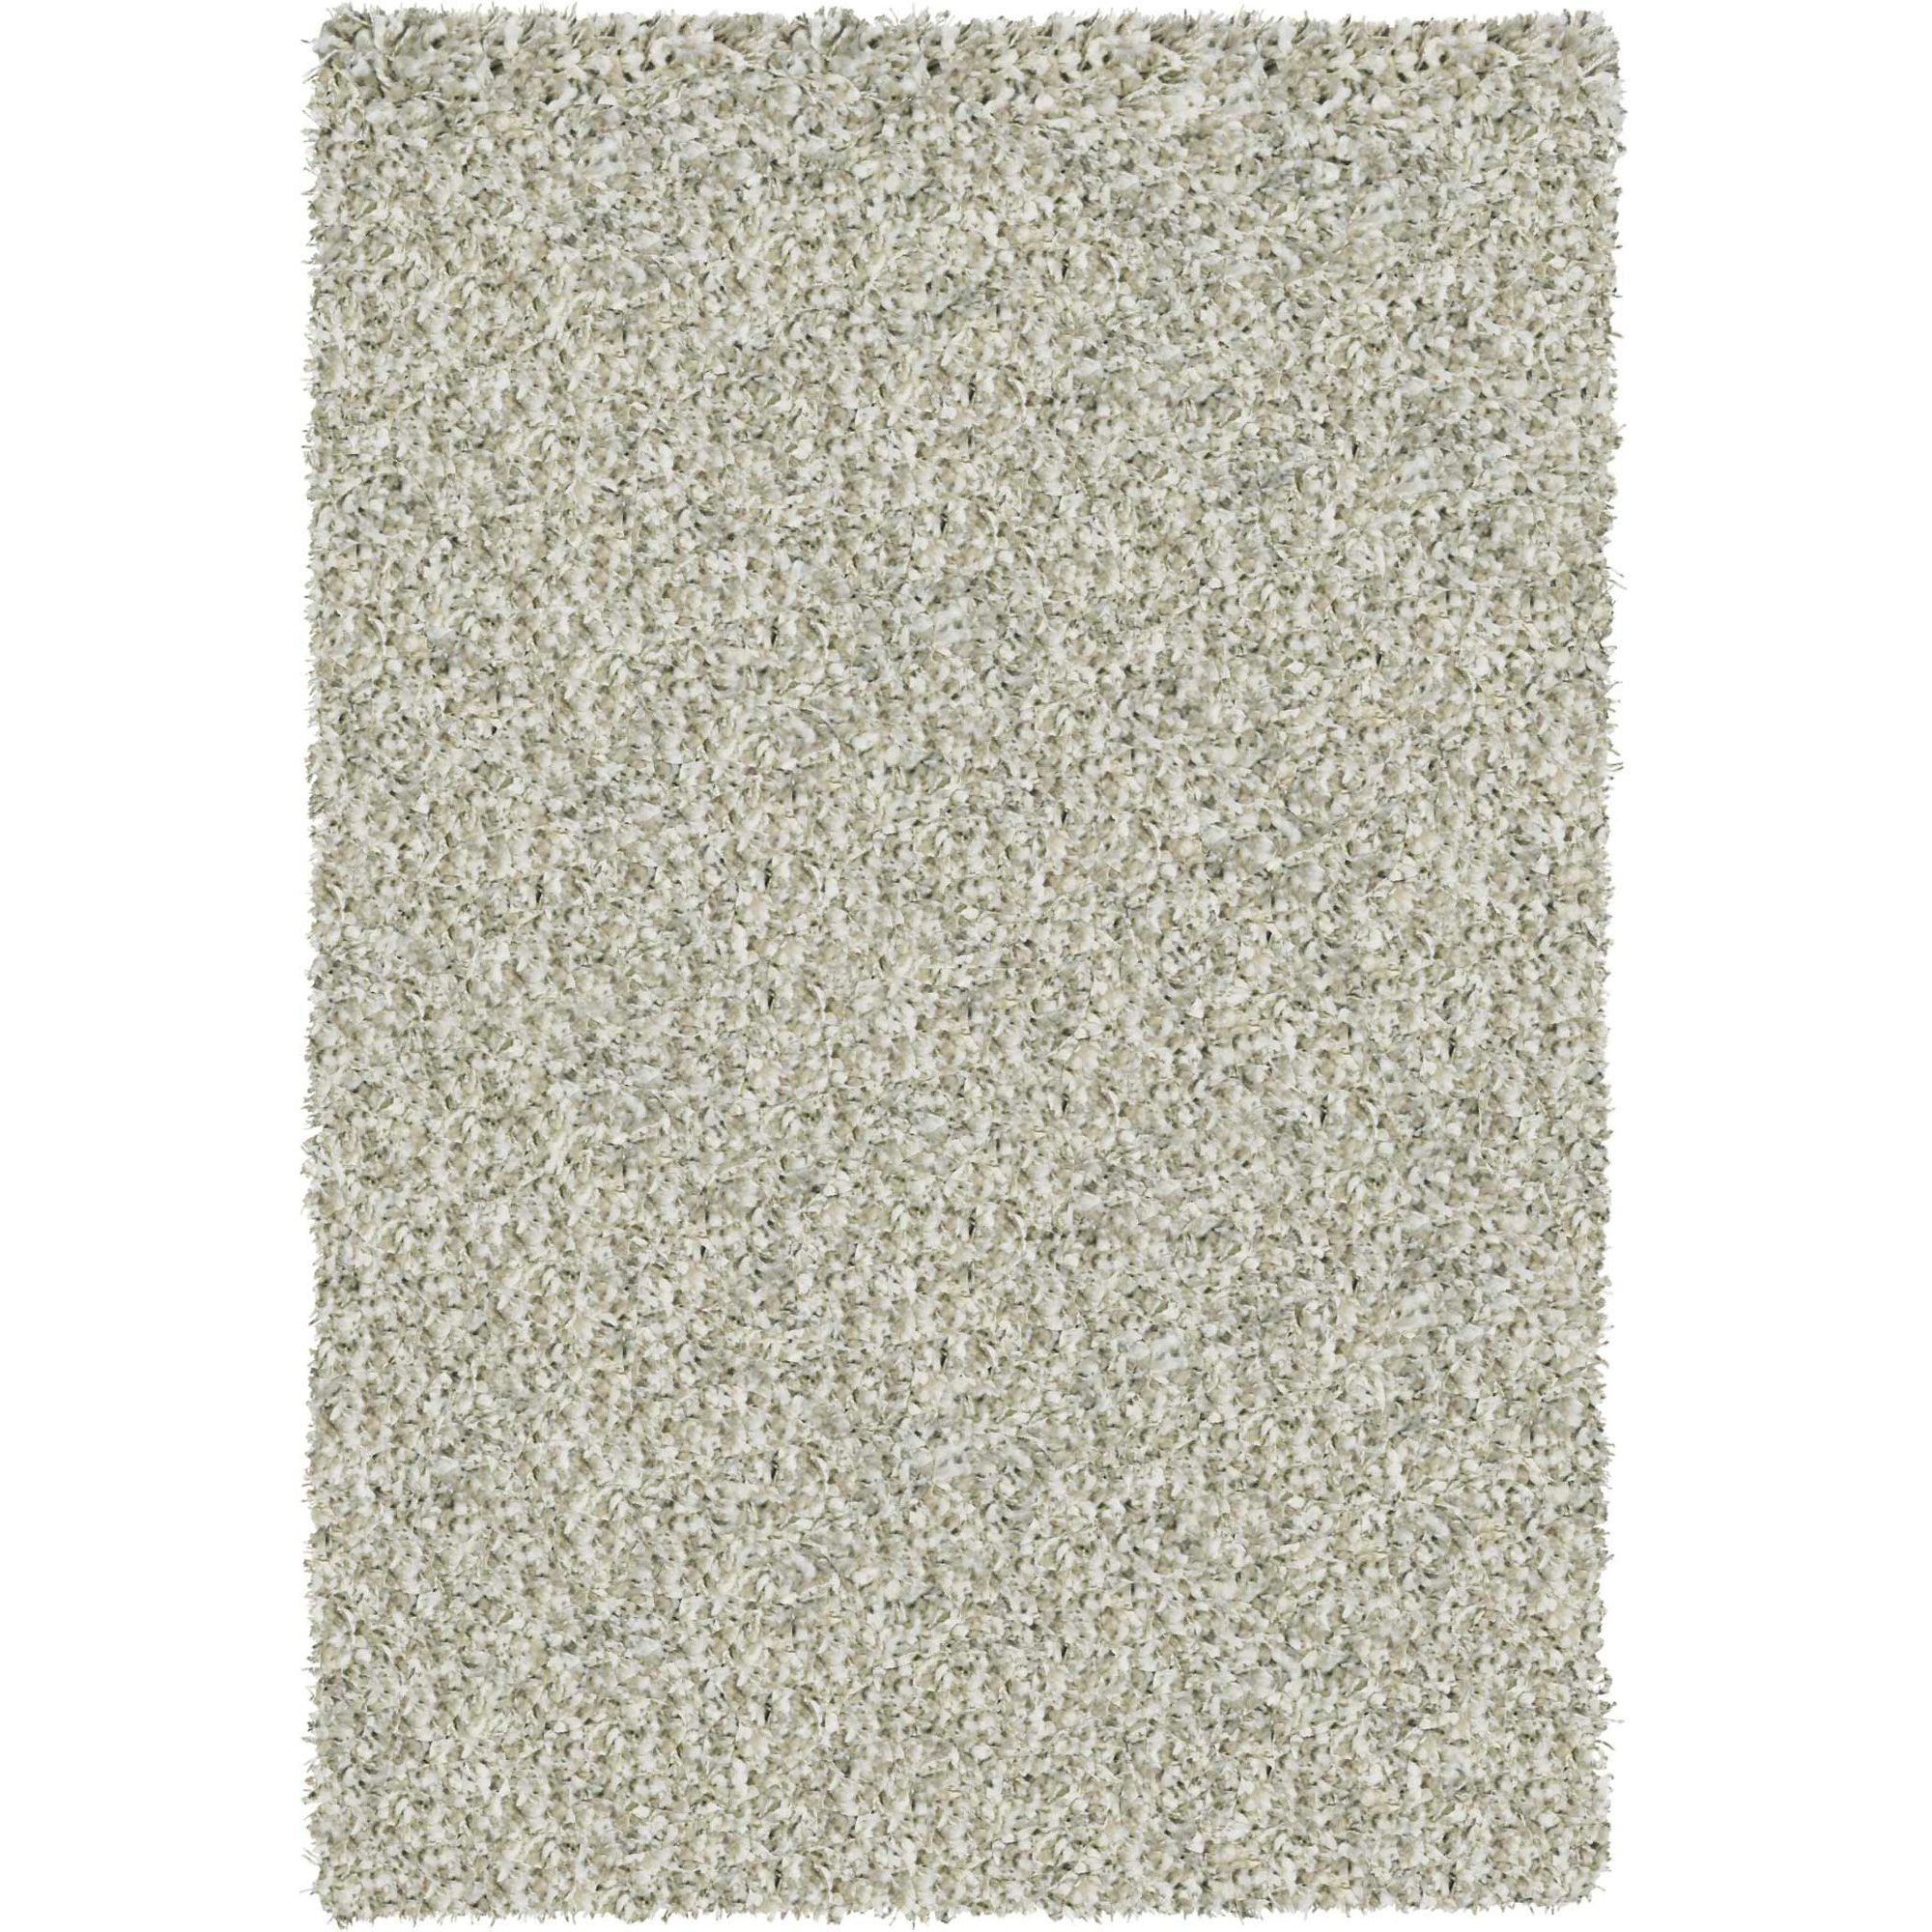 Mastercraft Rugs Twilight Linen / White Mix Rug - 120cm x 170cm (3 ft 11 in x 5 ft 7 in)